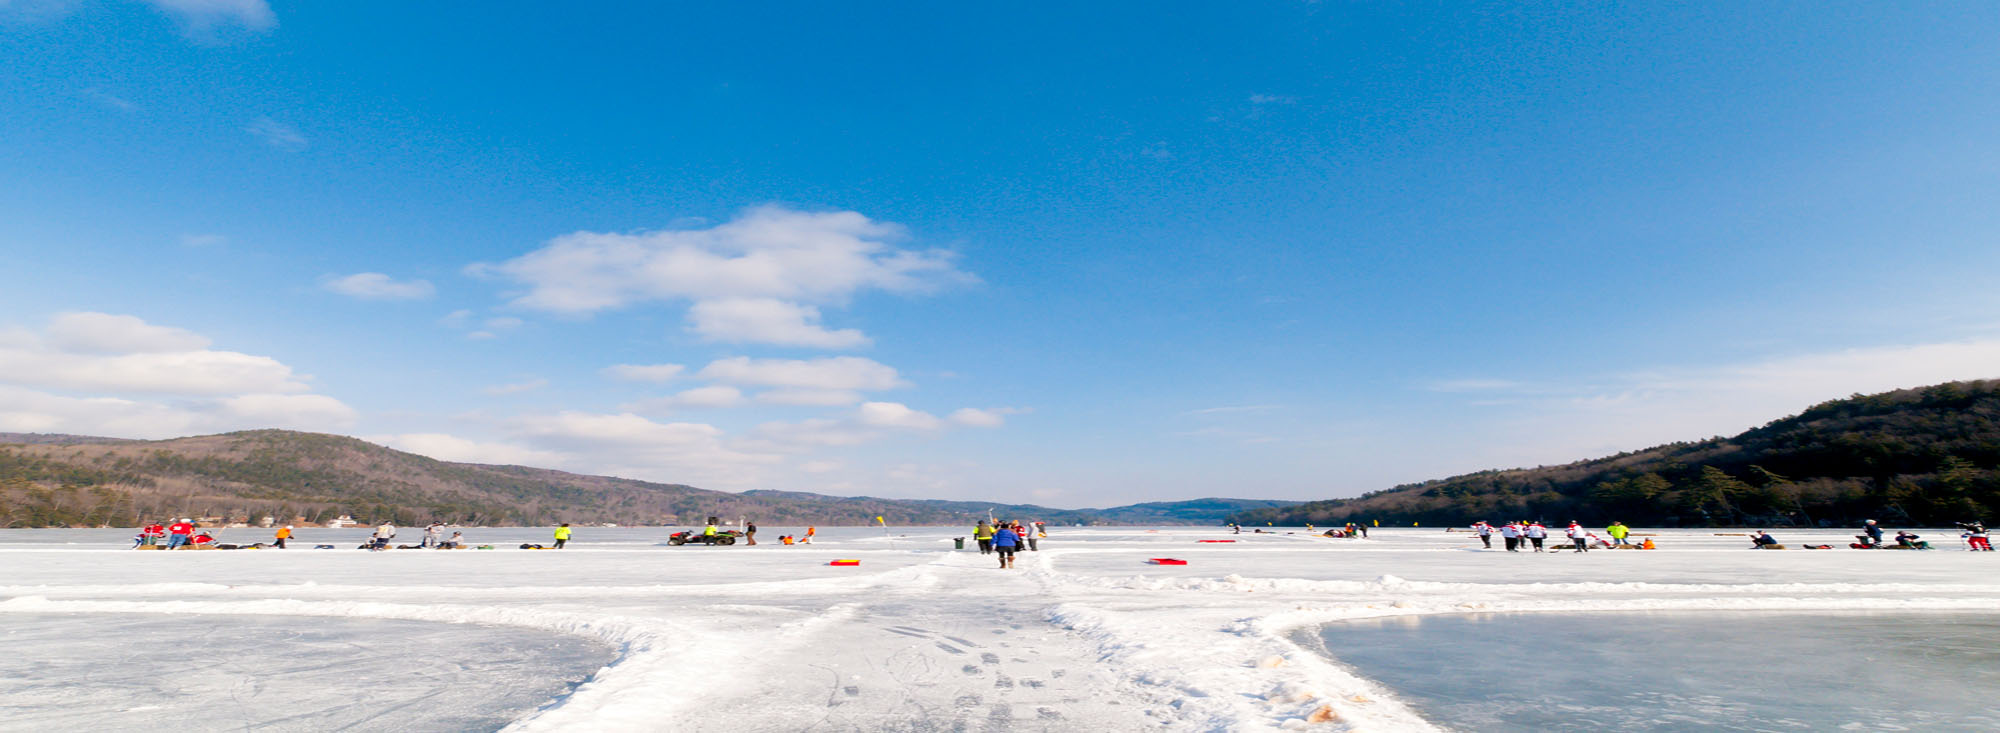 Panoramic of Lake Morey Resort Pond Hockey Rinks